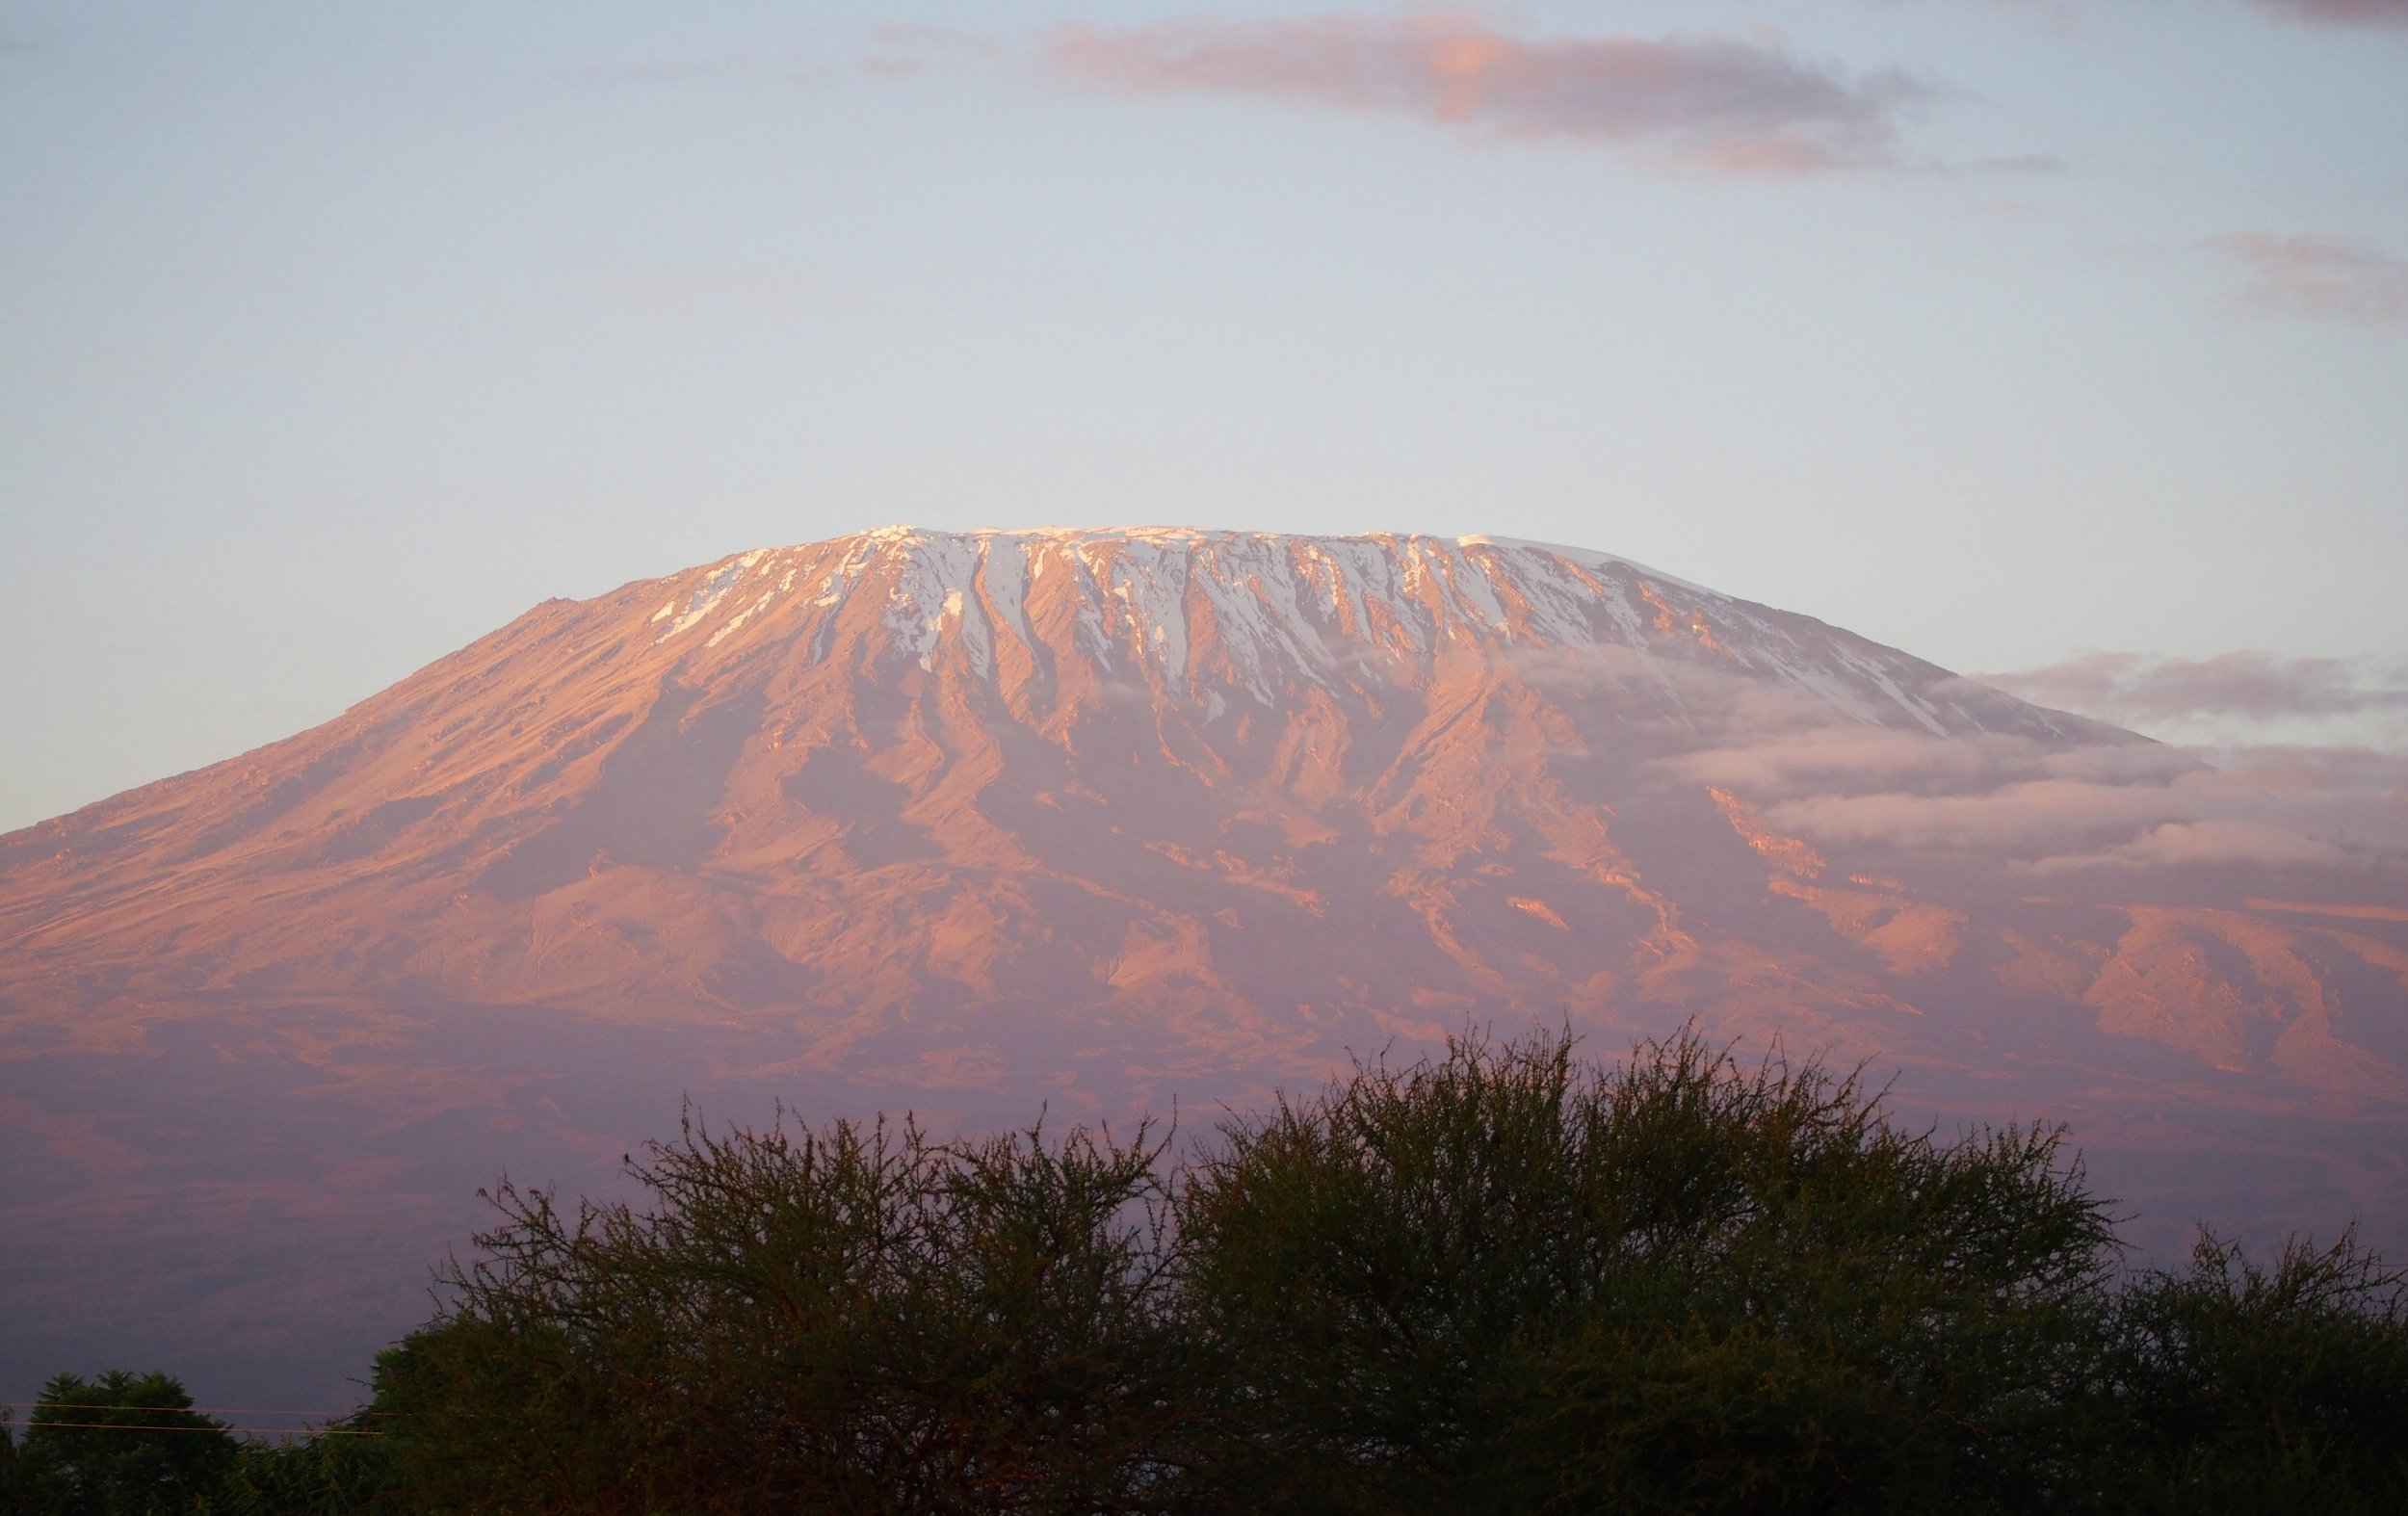 AFRICA'S HIGHEST PEAK: Mt. Kilimanjaro at Sunrise, Tanzania